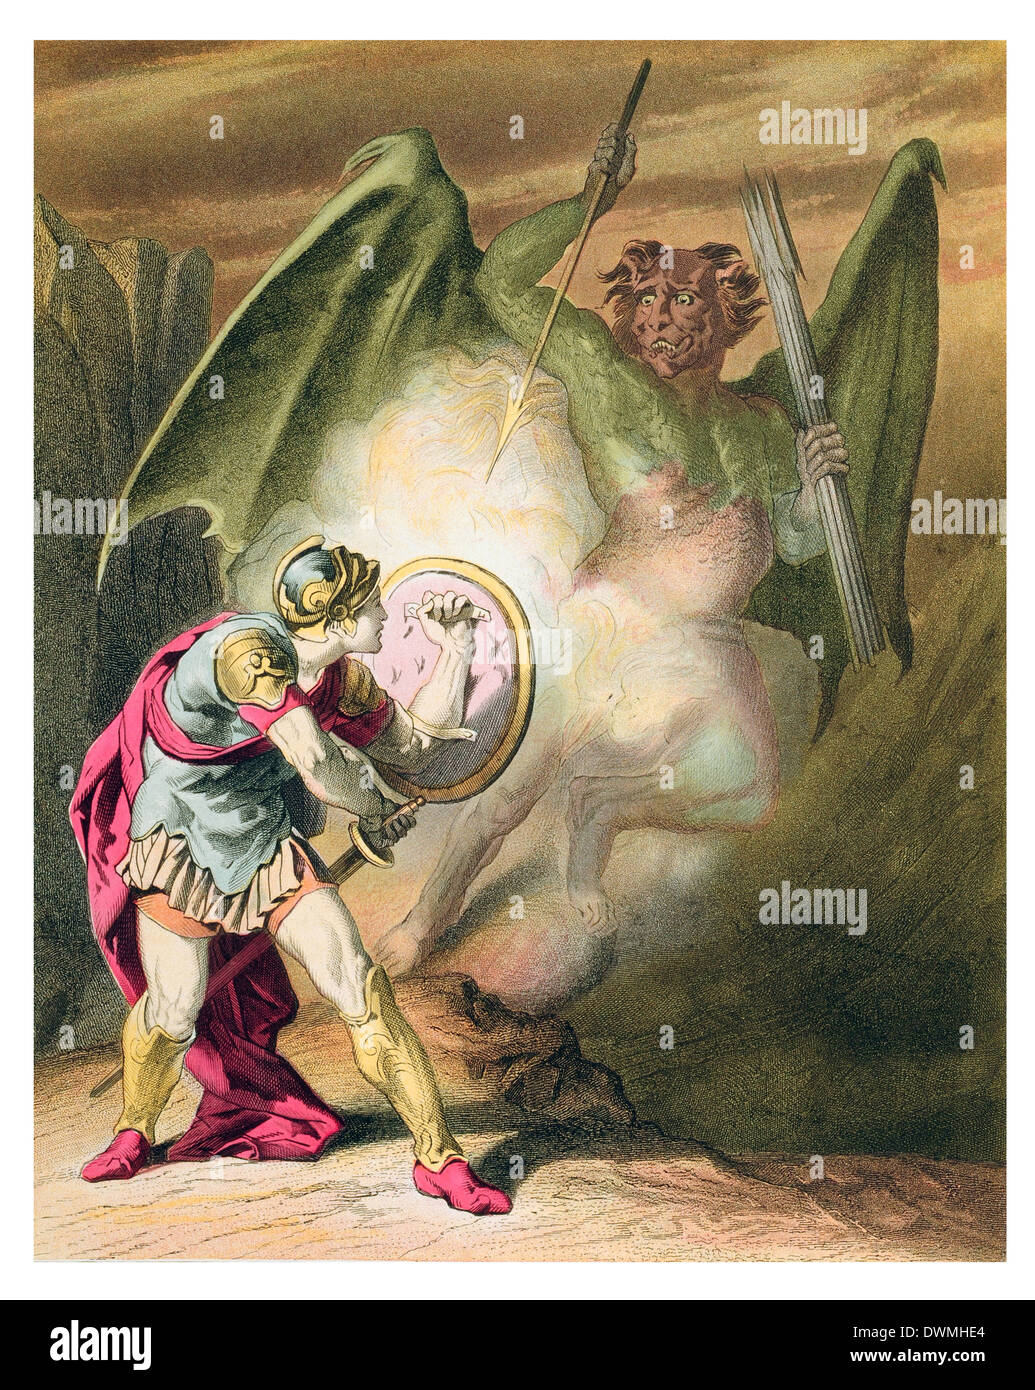 pollyon in a rage falls upon Christian - Stock Image